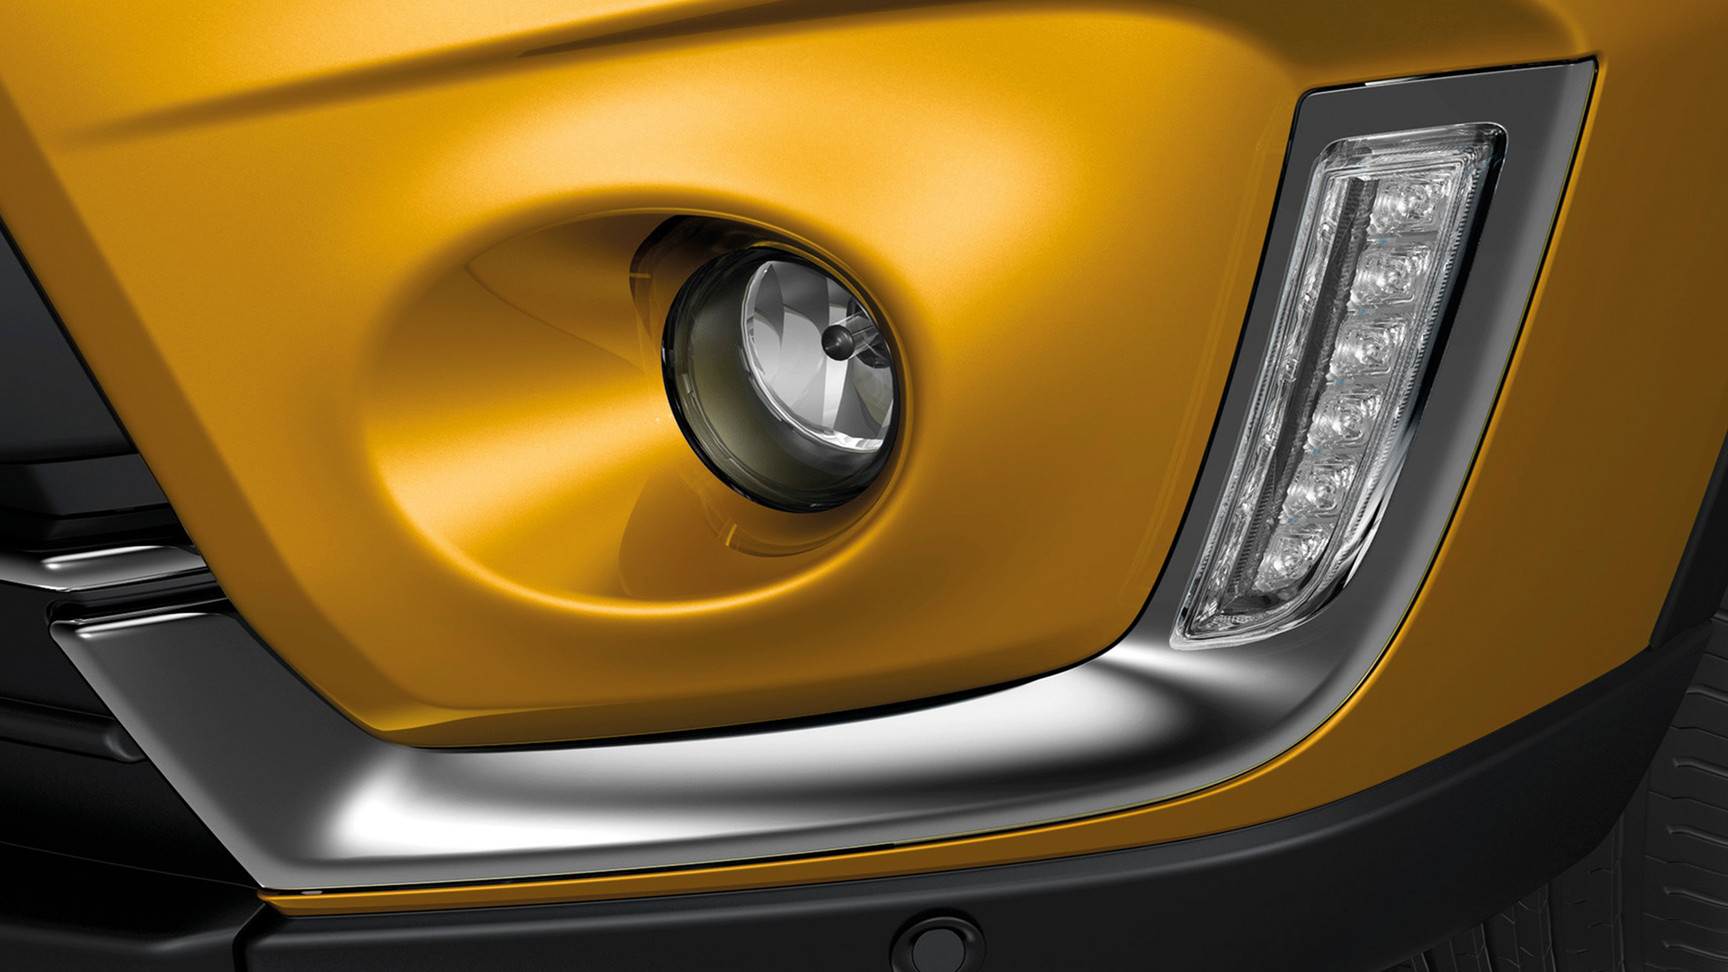 LED daytime running lamps and fog lamps